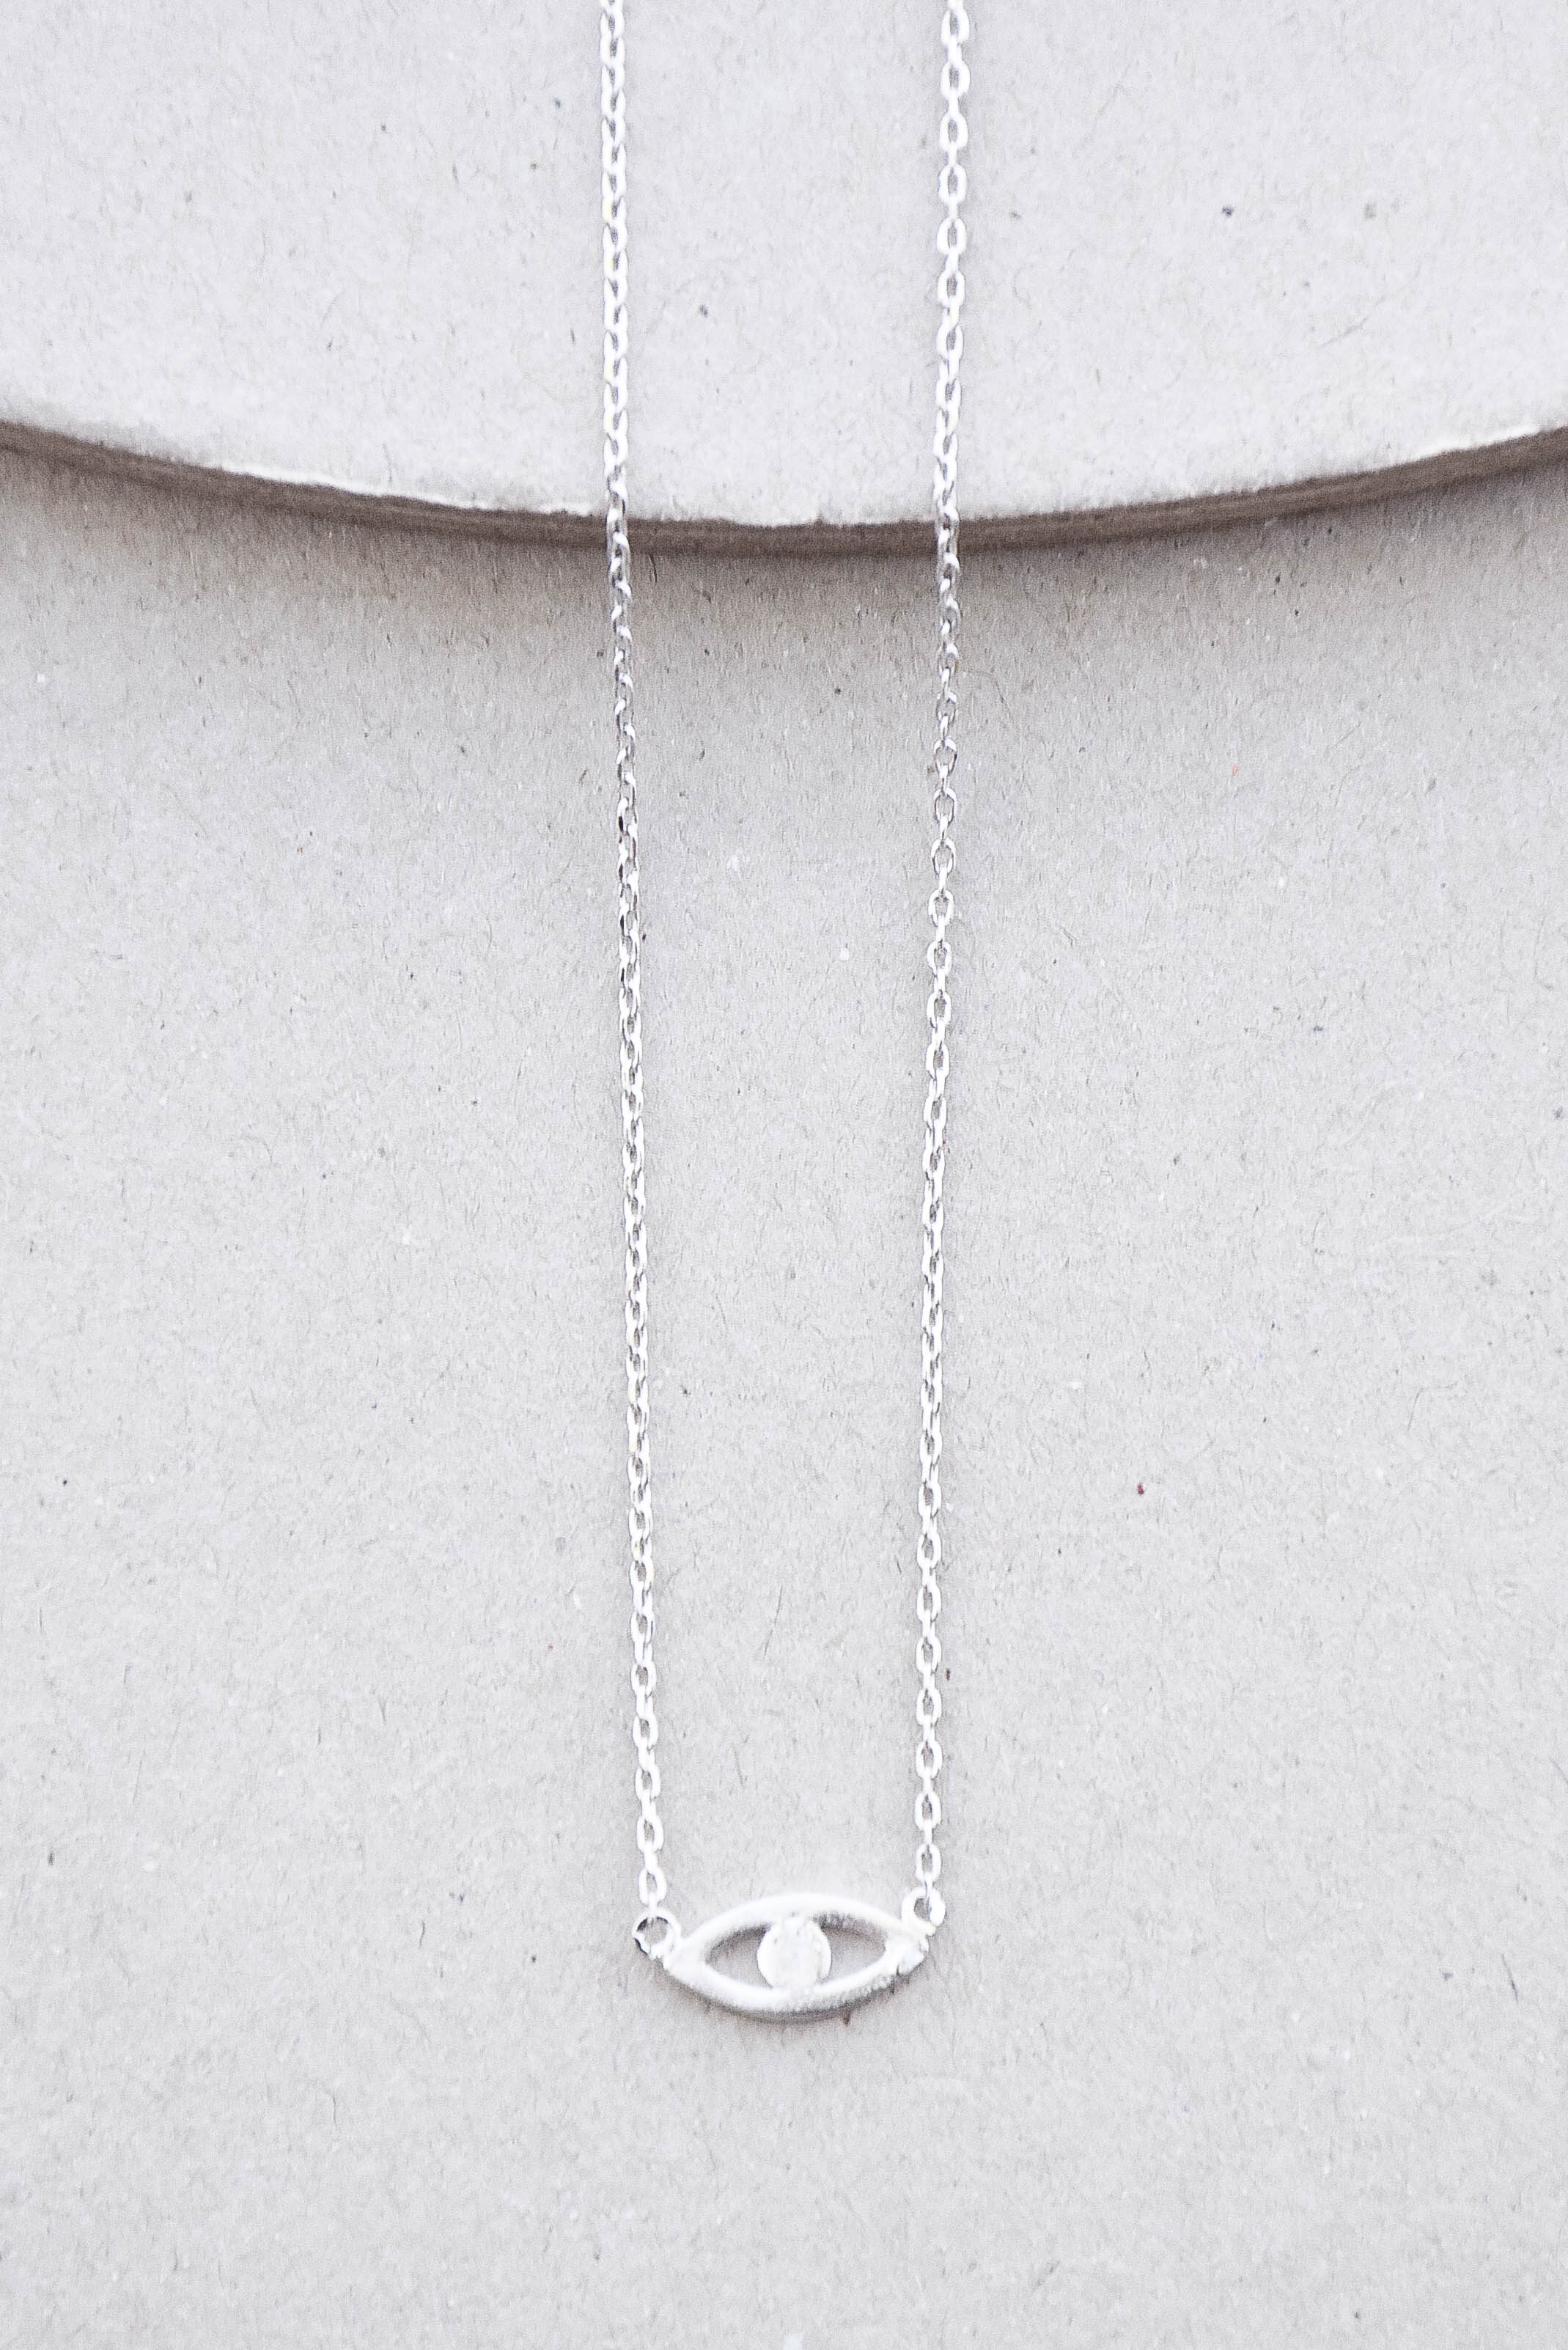 ETC Eye Necklace (Silver)